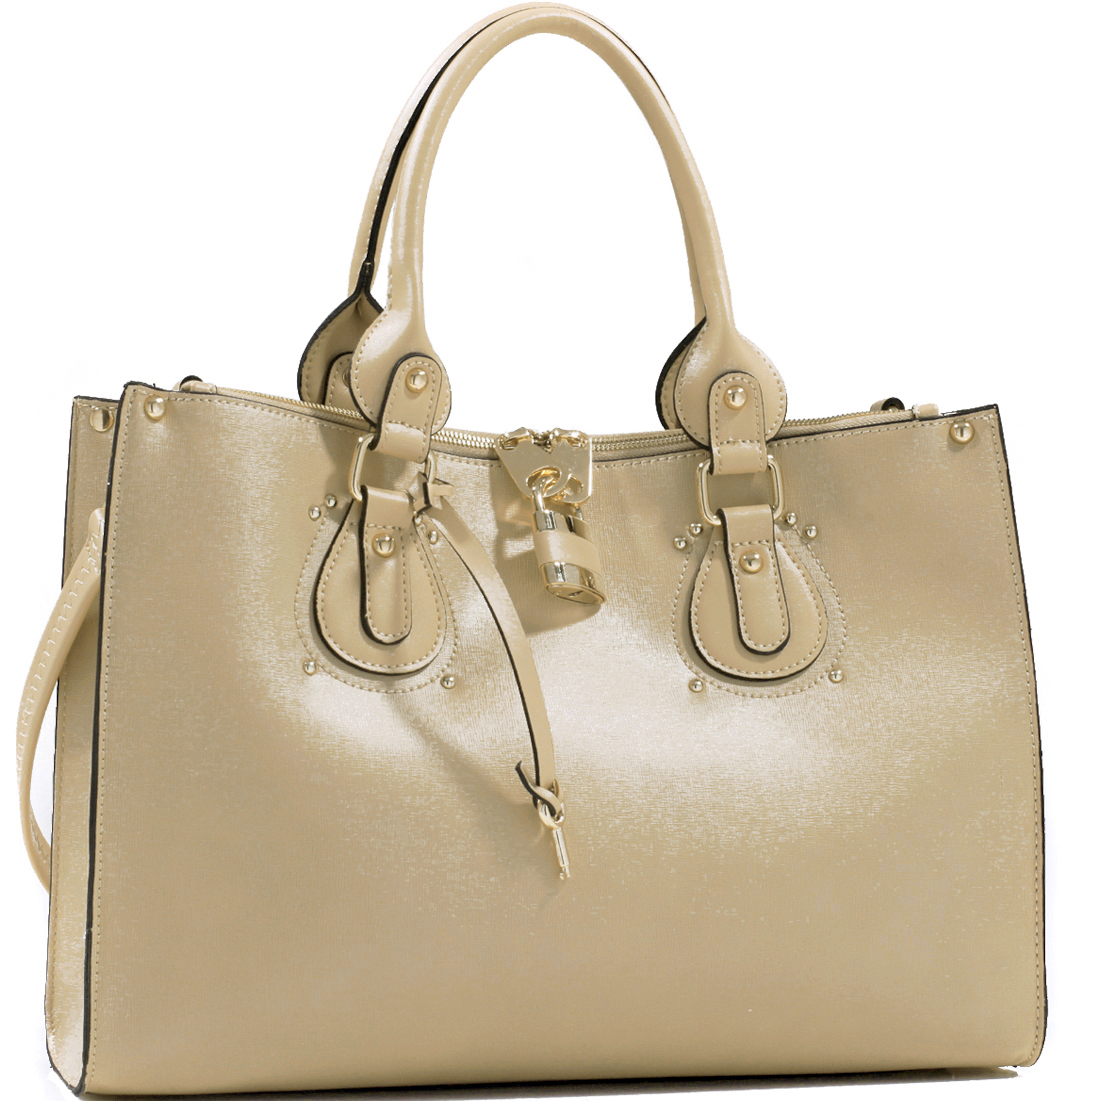 Studded Fashion Tote Bag with Lock Accent & Bonus Strap